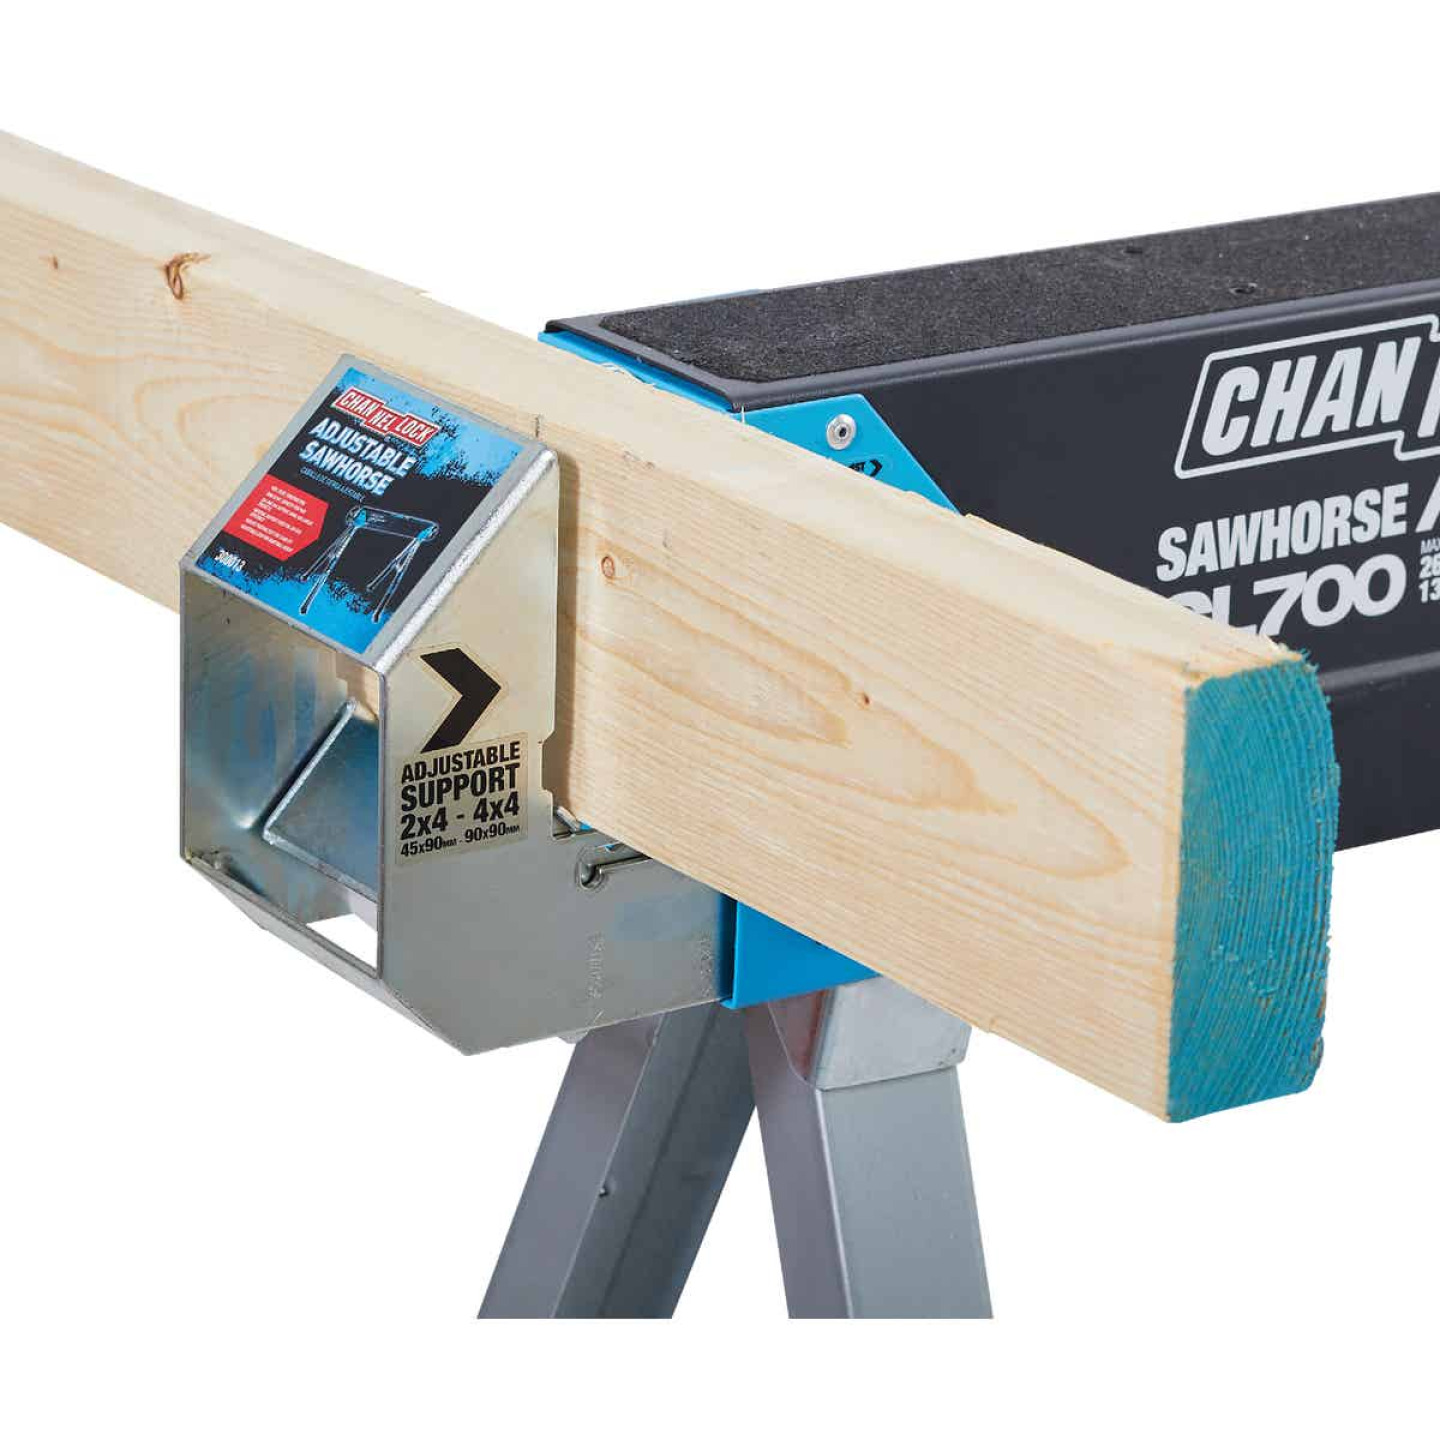 Channellock 39-1/4 to 45-3/4 In. Long Steel Adjustable Sawhorse Jobsite Table, 1300 Lb. Capacity Image 13